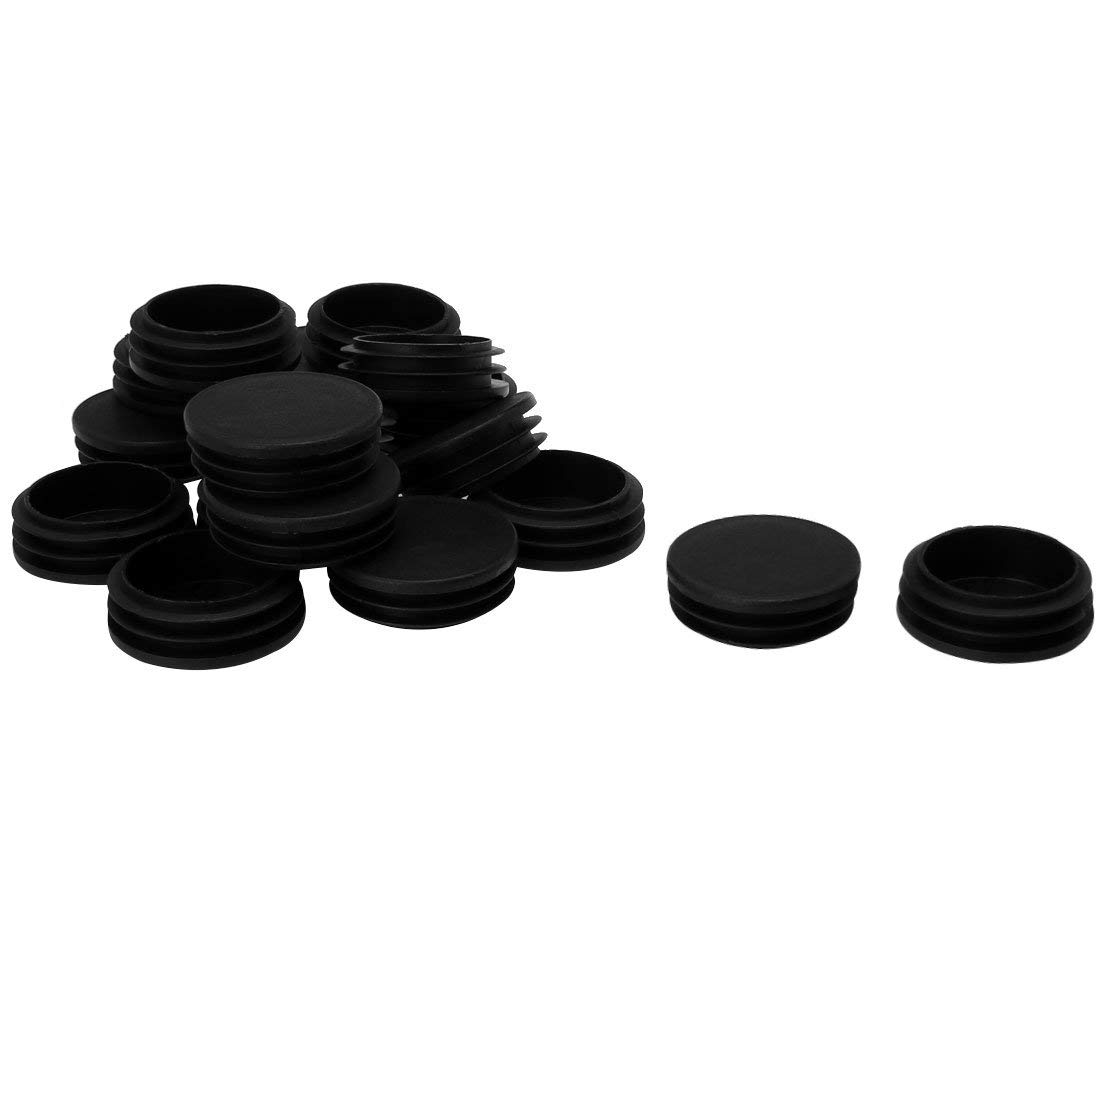 """uxcell 1 7/8"""" 48mm OD Plastic Round Tube Ribbed Inserts End Cover Caps 18pcs, 1.81""""-1.89"""" Inner Dia, Floor Furniture Chair Table Protector"""